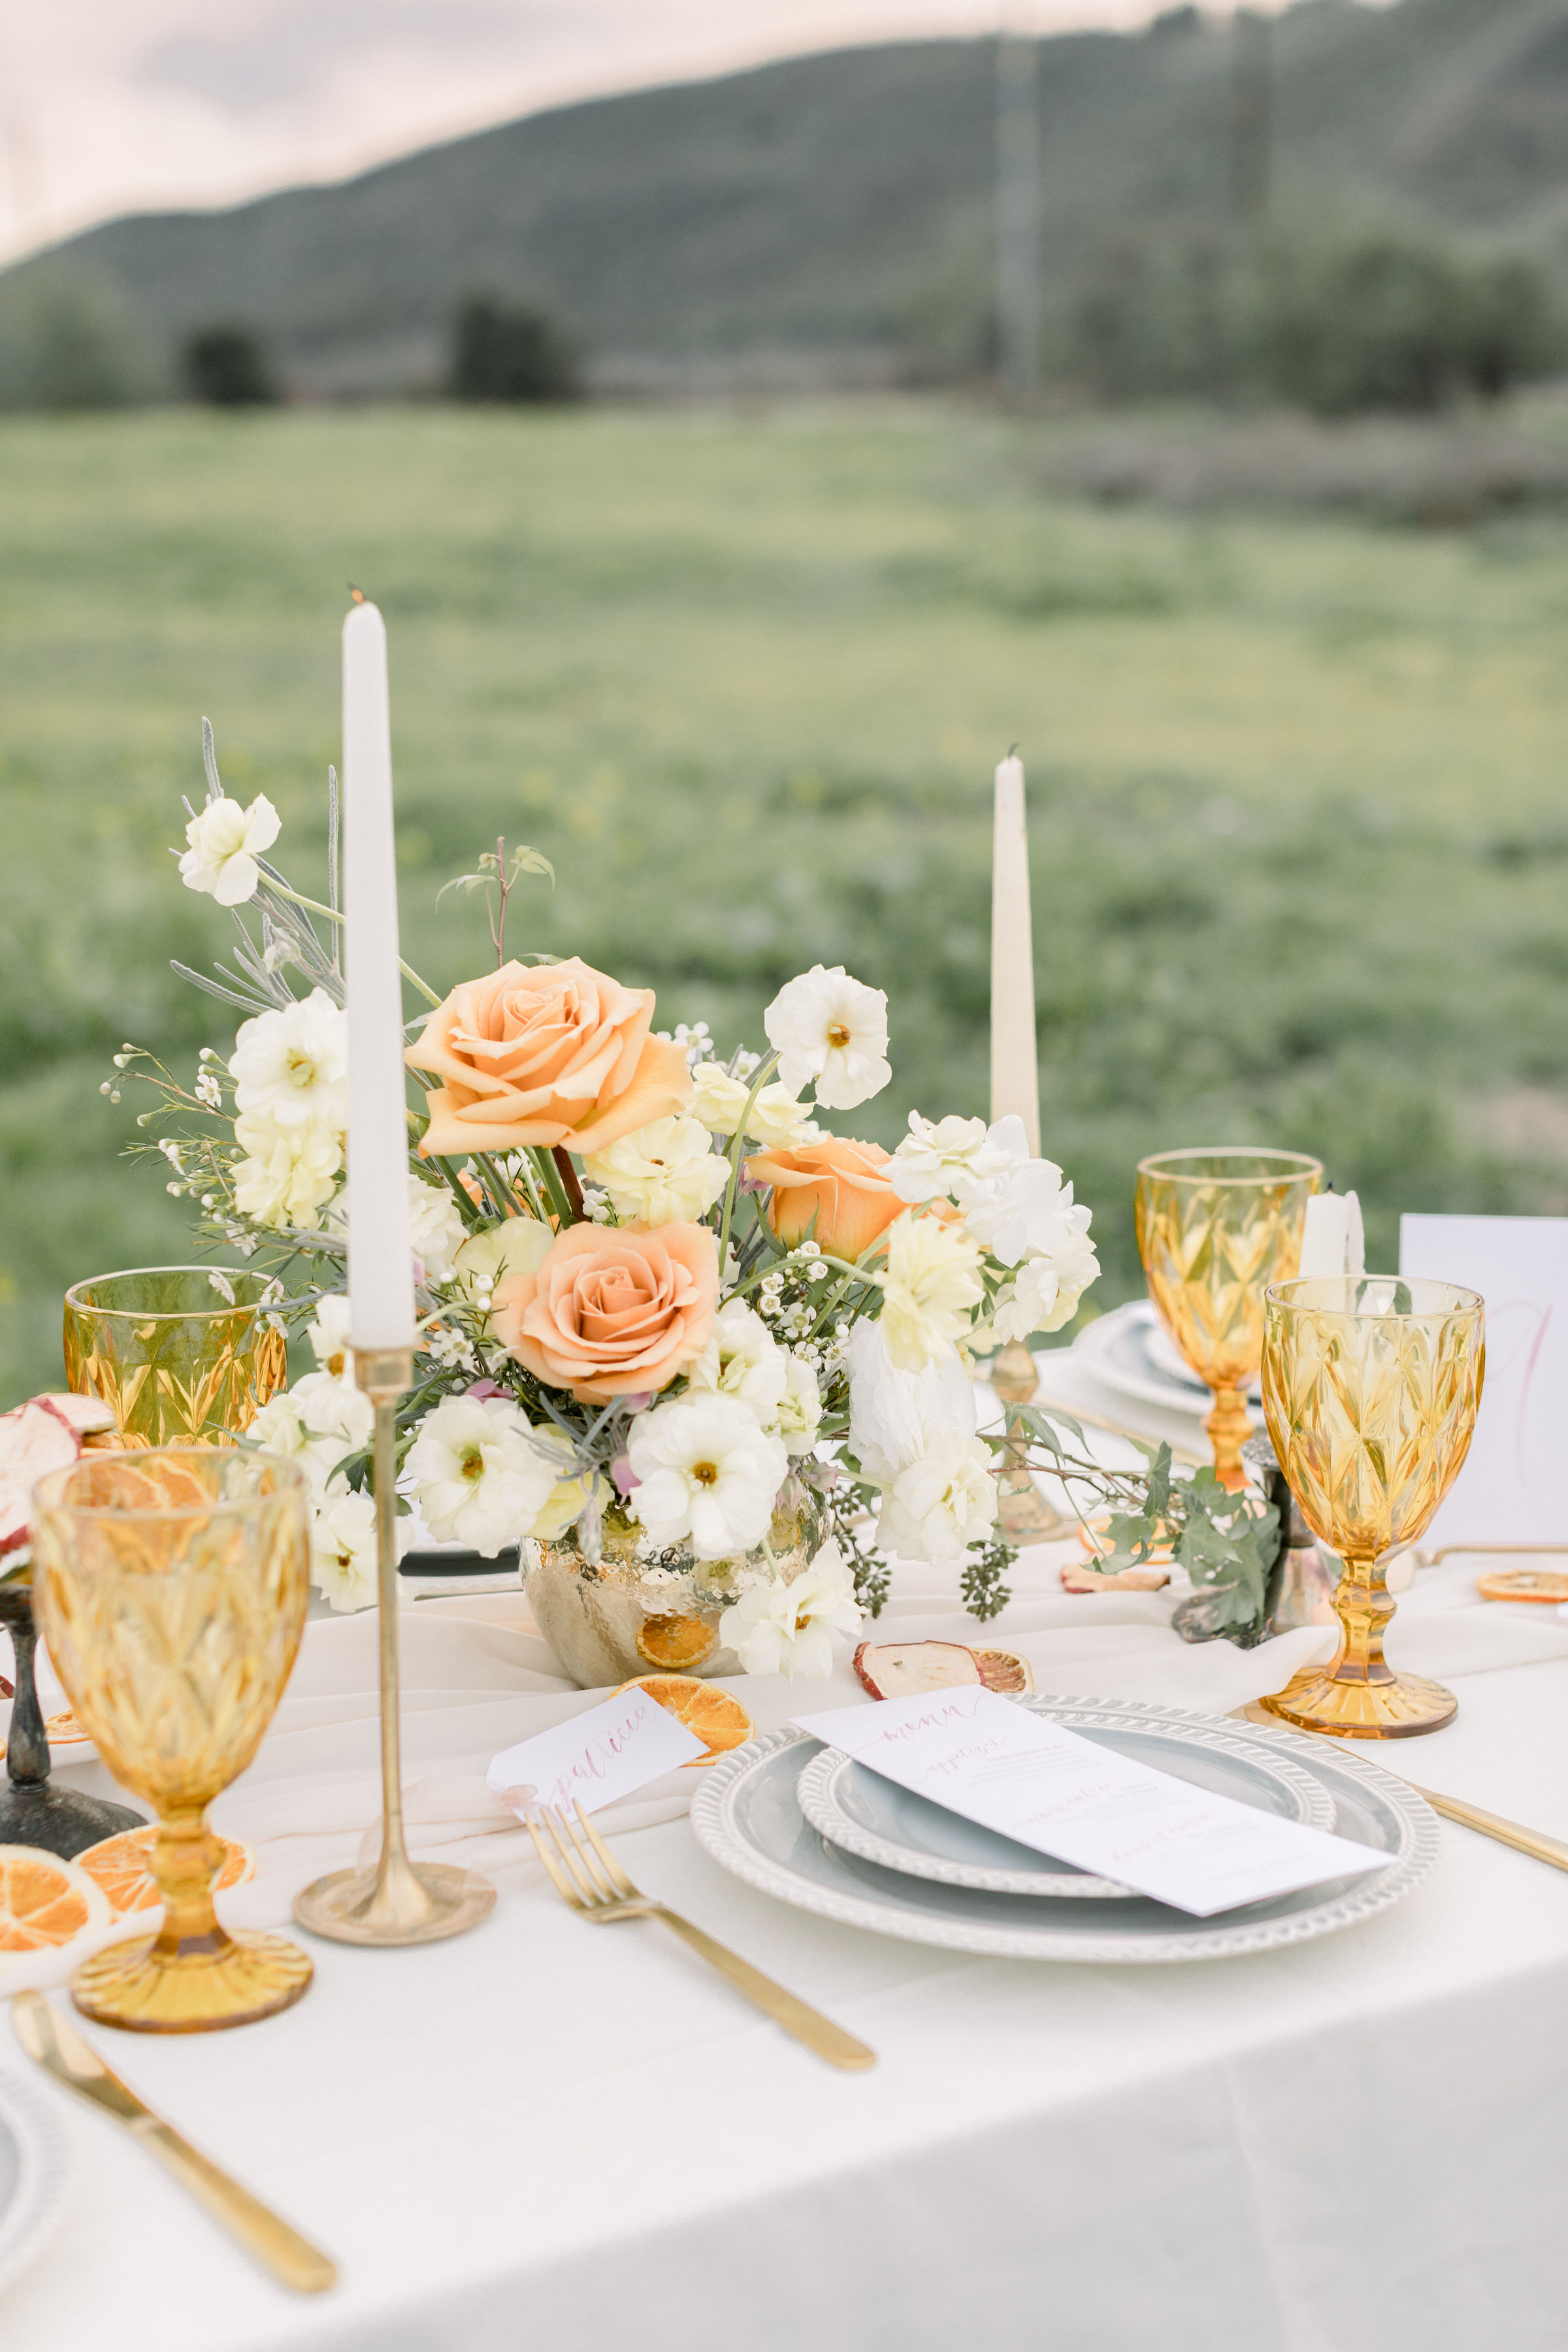 StephanieWeberPhotography-Pink Wedding Reception Tablescape – Bloom Theory Centerpiece